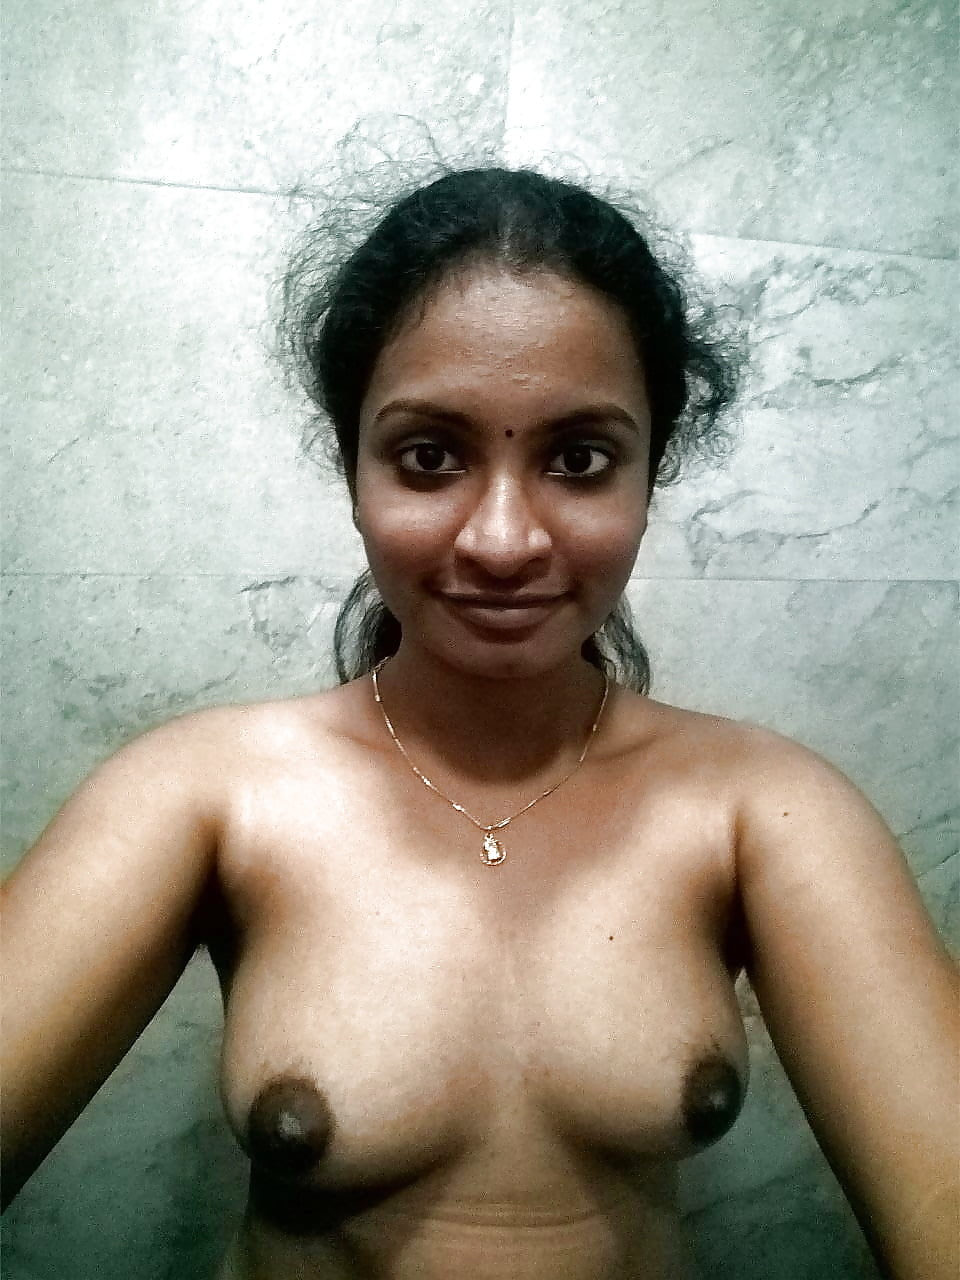 Tamil school girls sexy photos